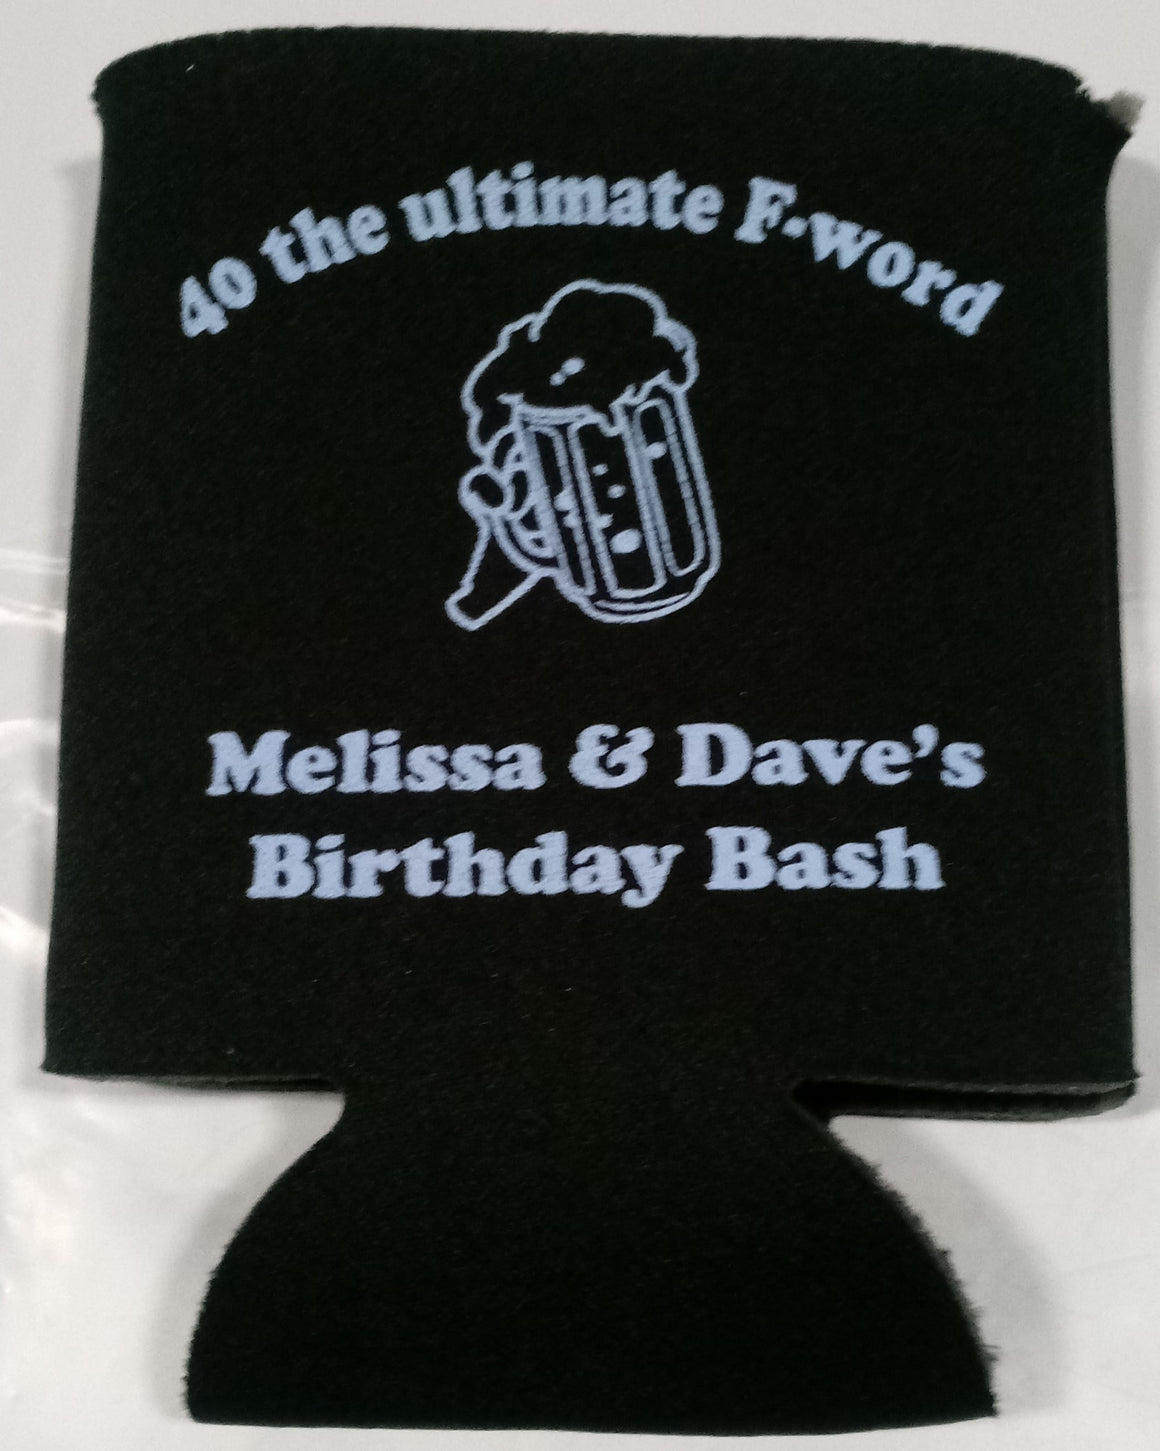 40th Birthday party the ultimate F word coozies funny can coolers